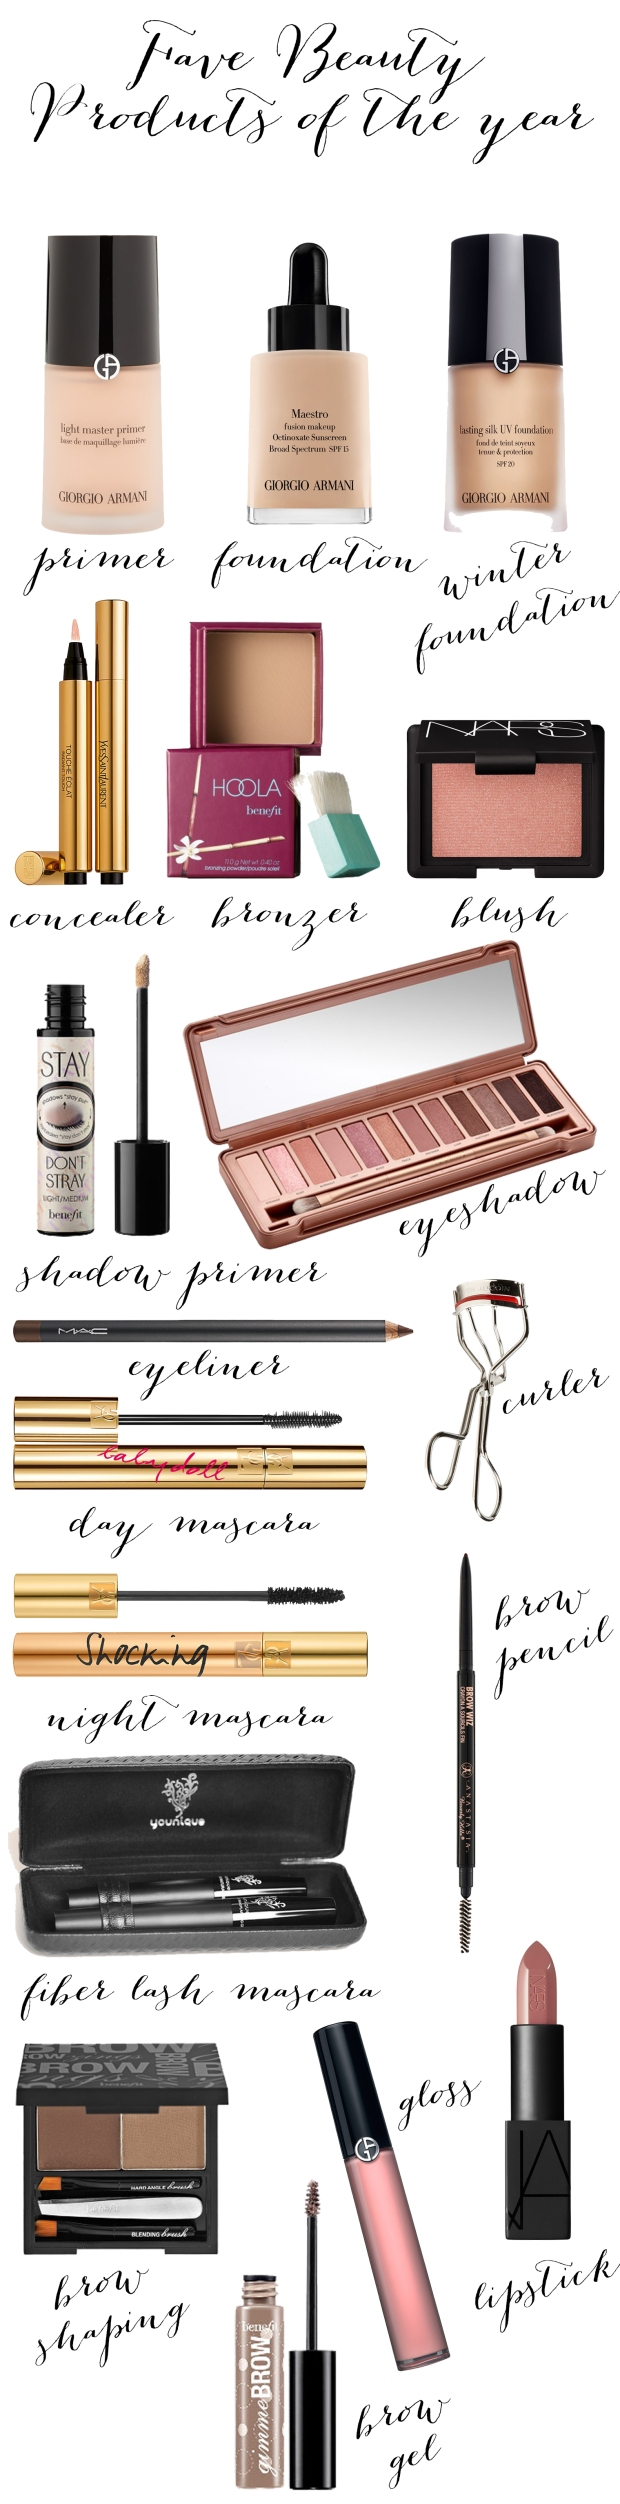 Fave Beauty Products of 2014 | TheSubtleStatement.com